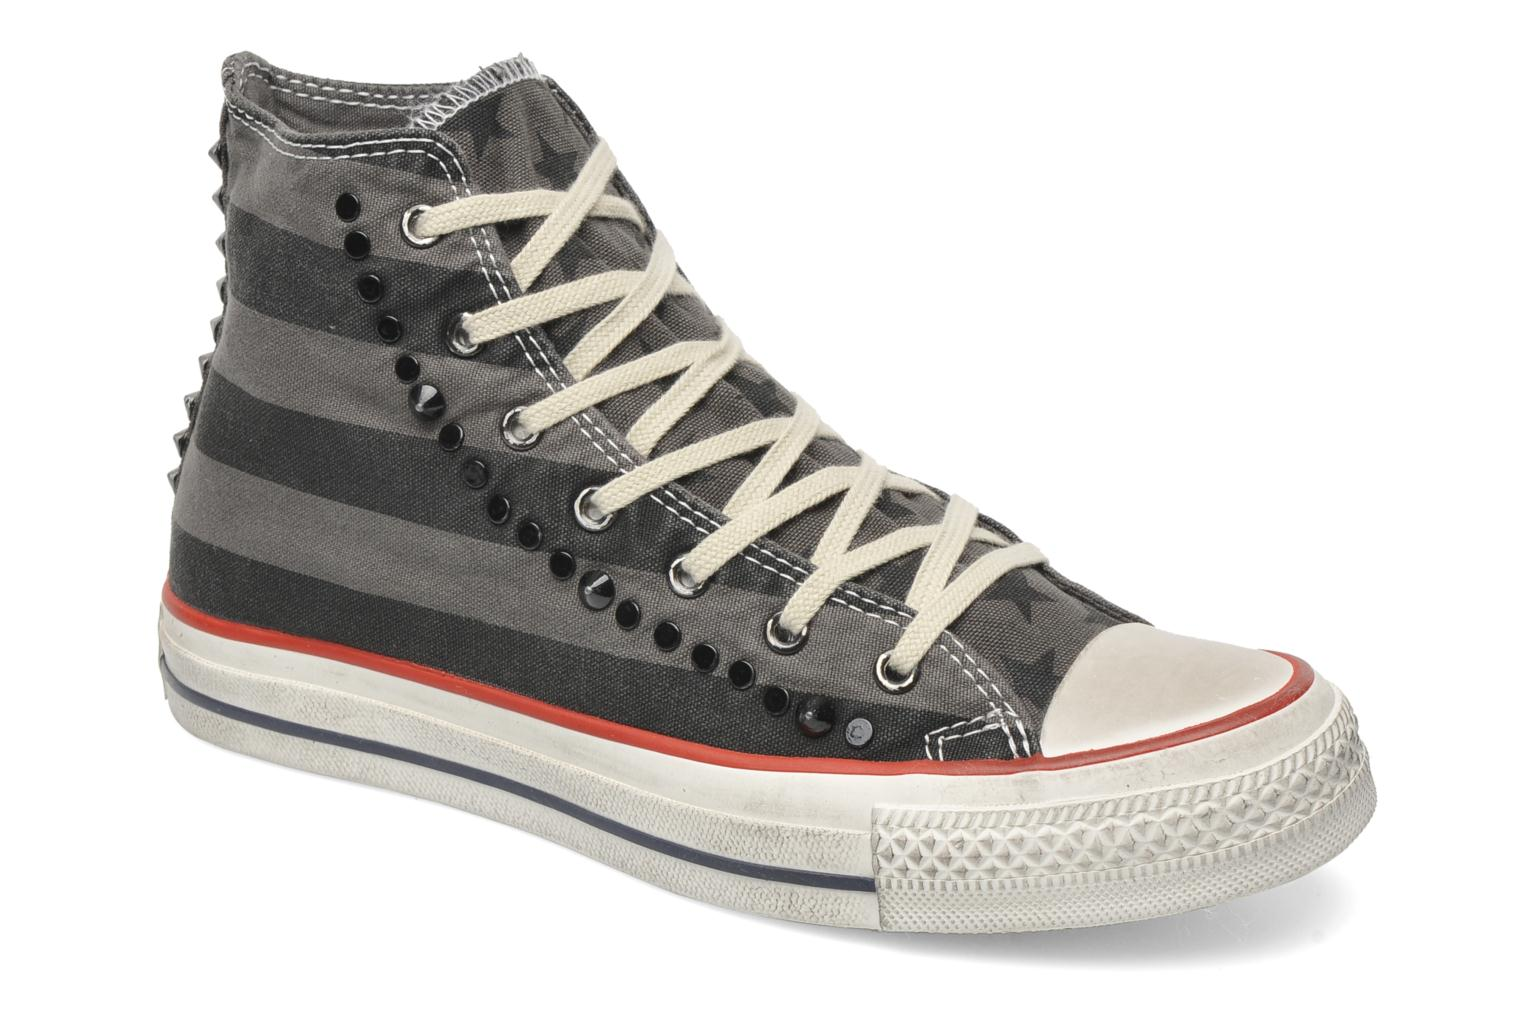 Baskets Converse Chuck Taylor All Star Well Worn Studs Canvas Hi W Gris vue détail/paire